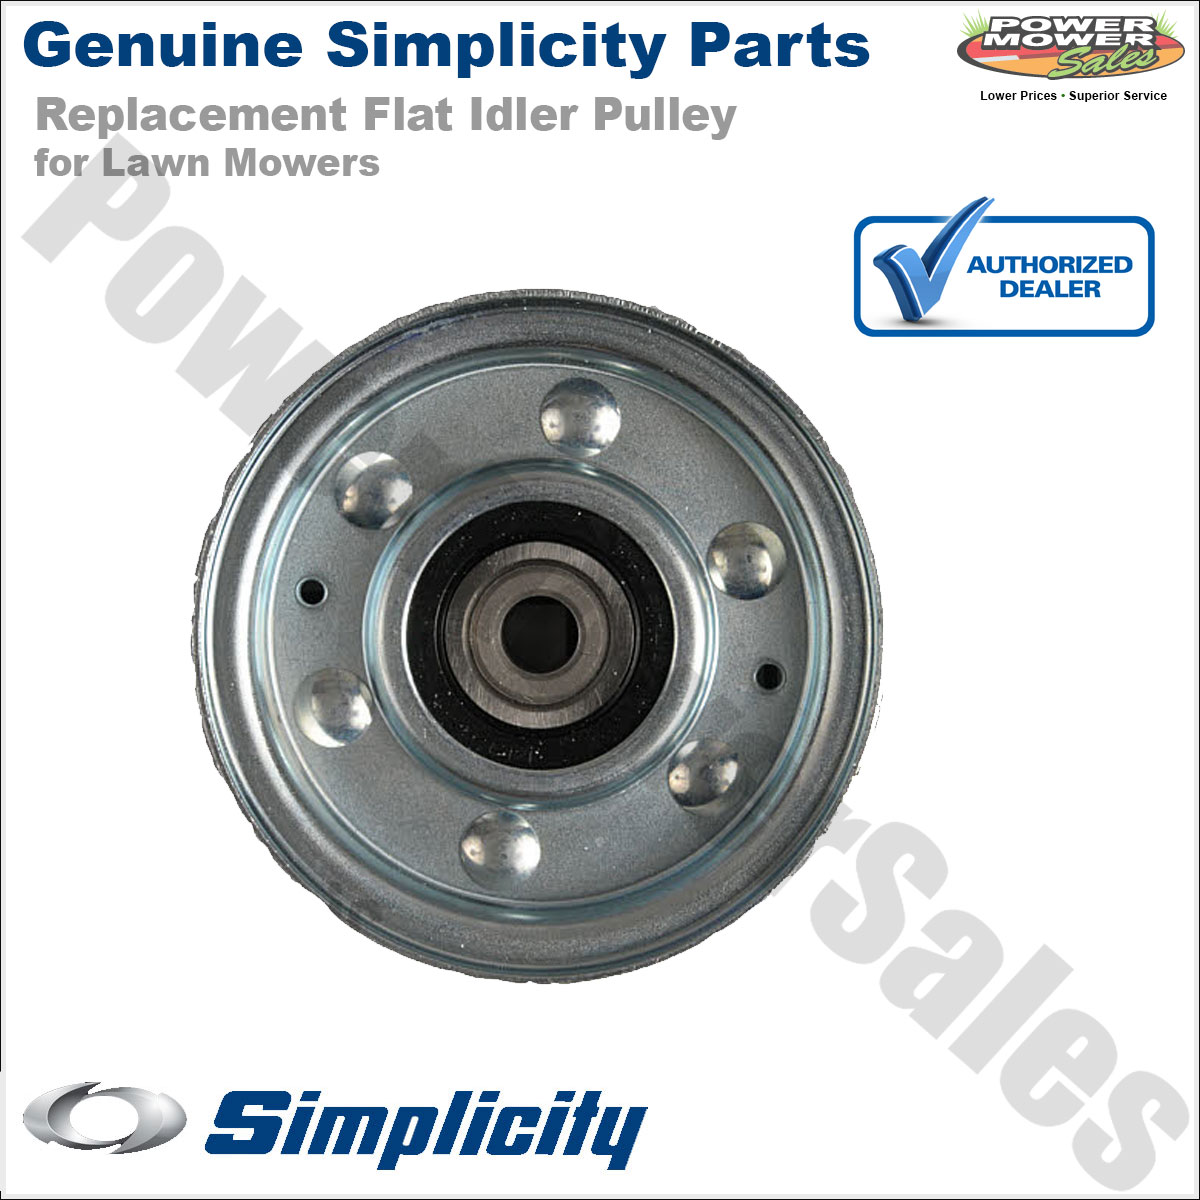 Details about 1721133SM 1707289 Simplicity Snapper Flat Idler Pulley on